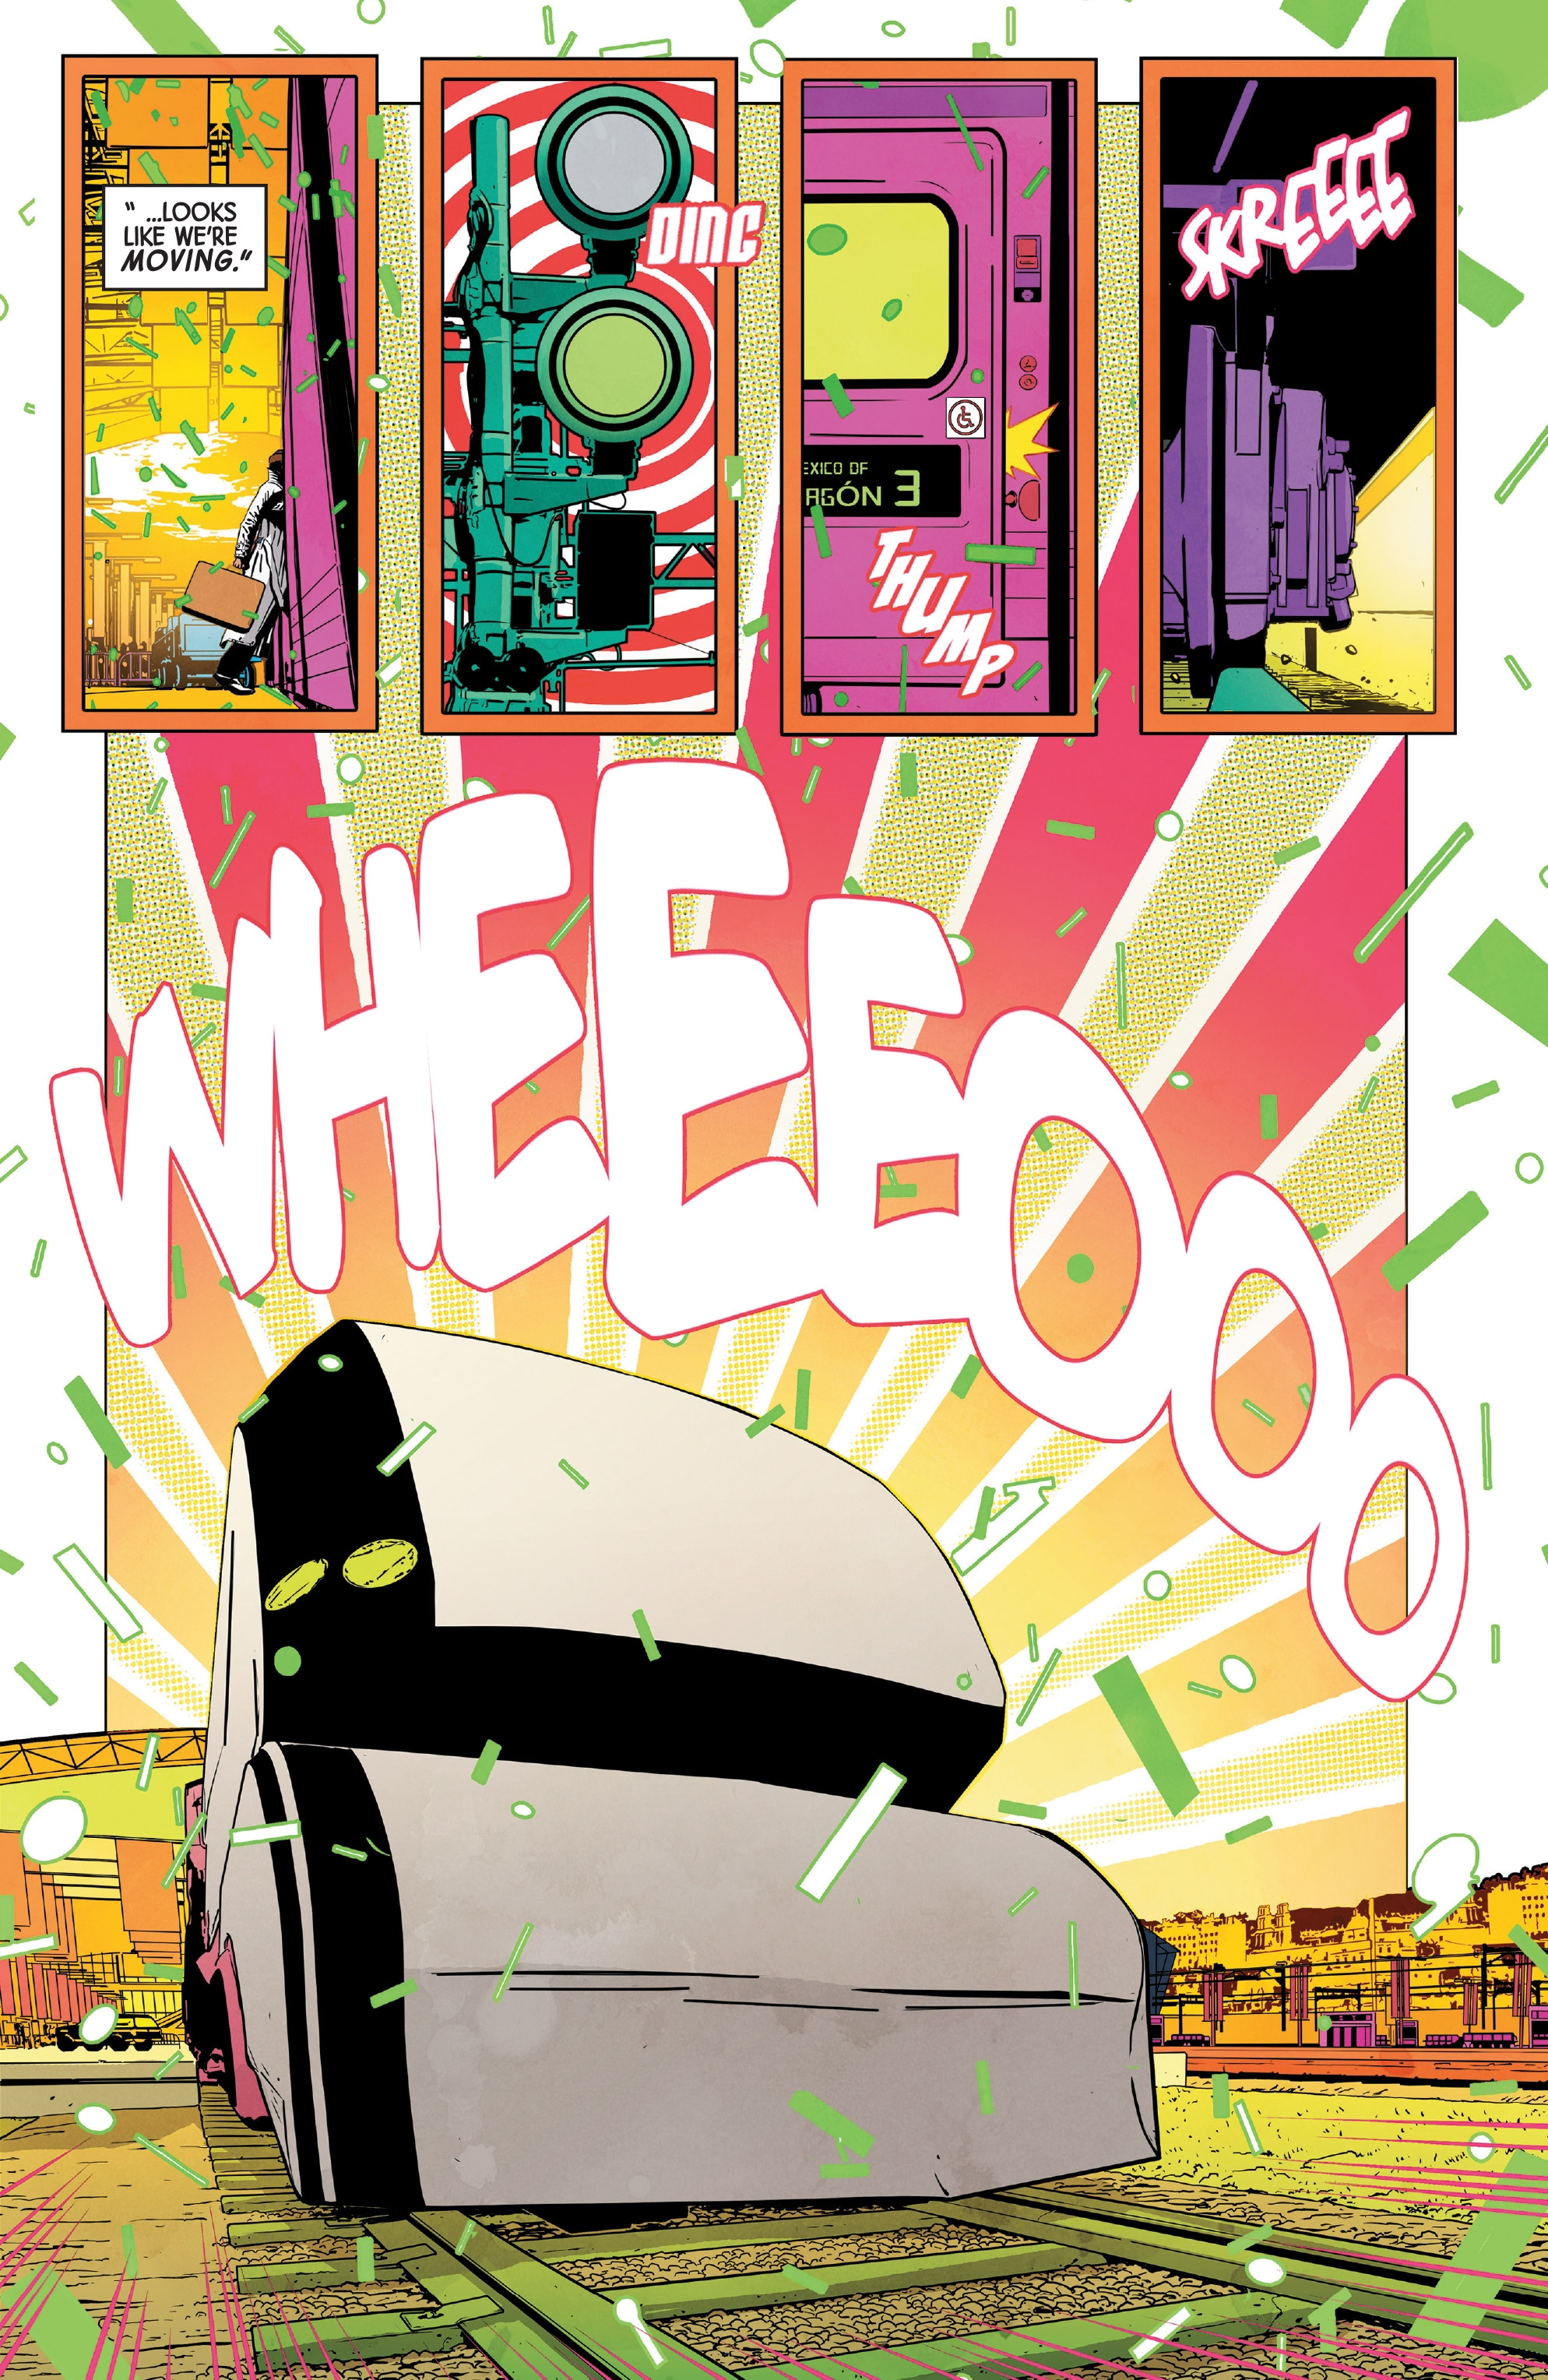 Read online Nick Fury comic -  Issue #3 - 6